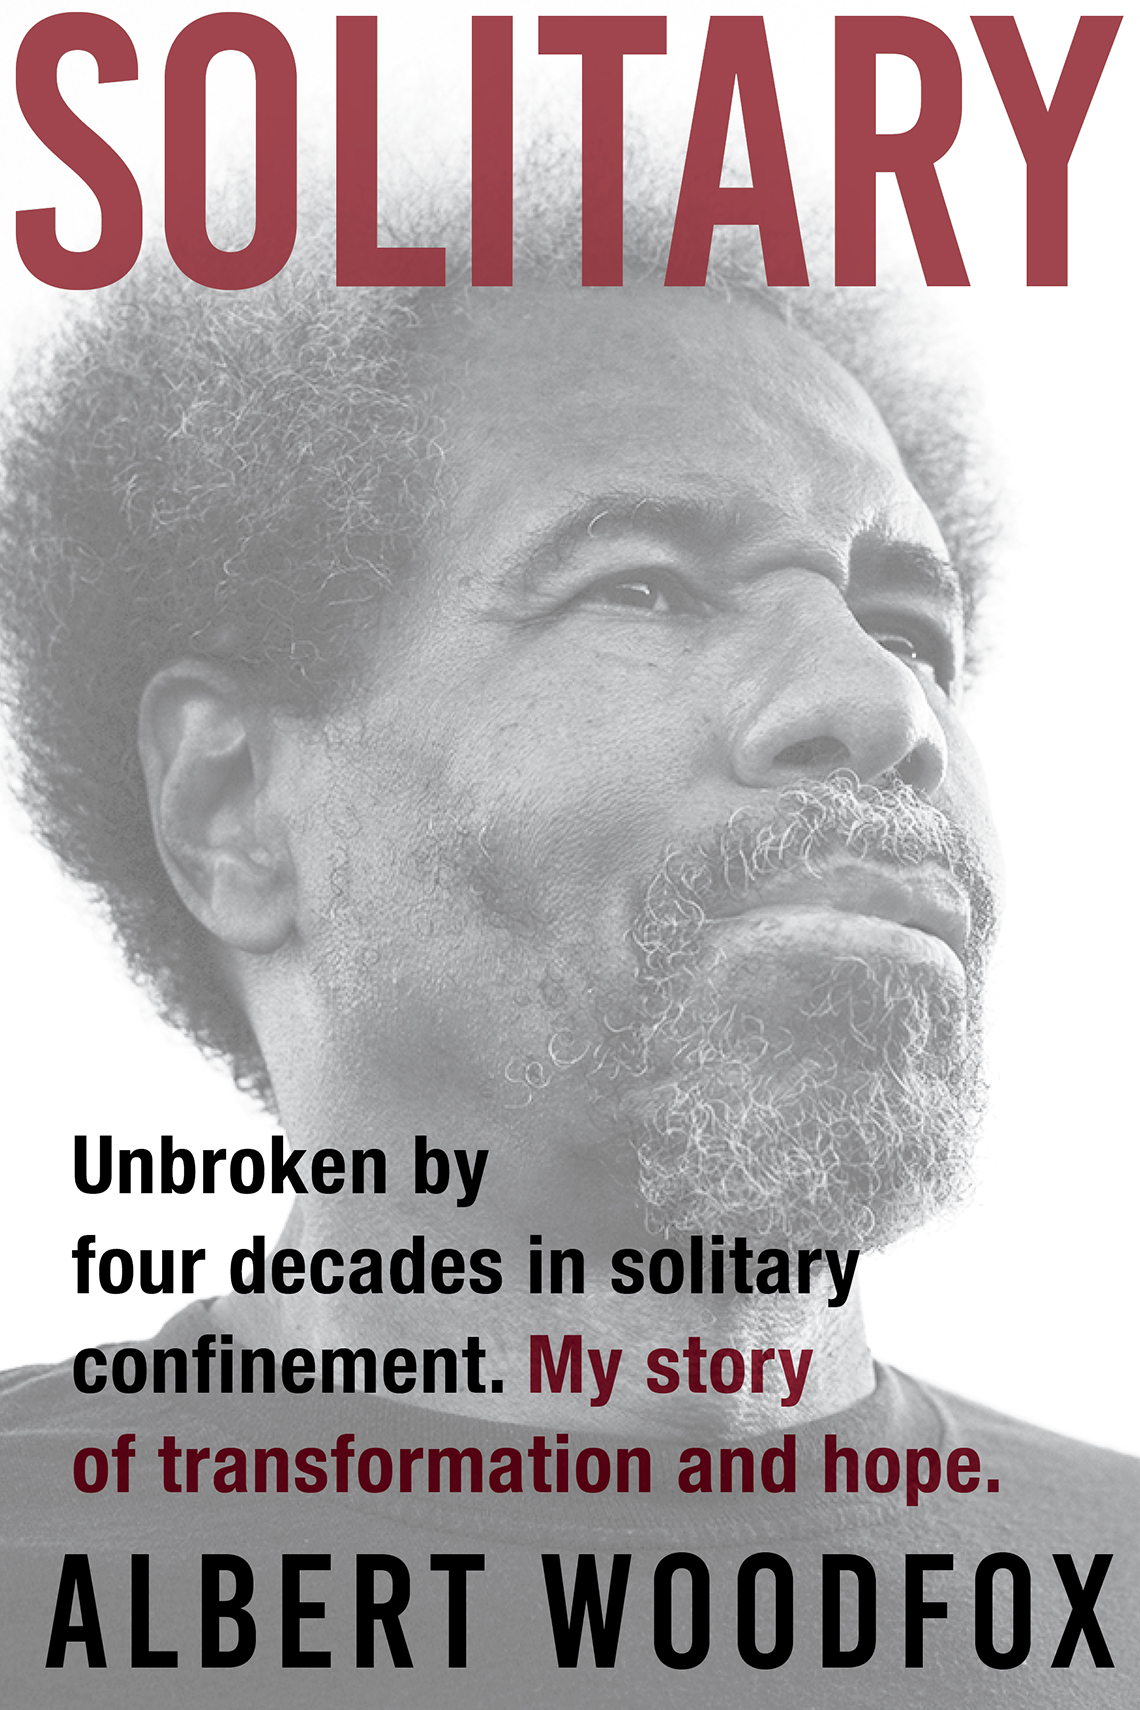 Book cover reads: Solitary Unbroken by Four Decades in Solitary Confinement. My story of transformation and hope, Albert Woodfox